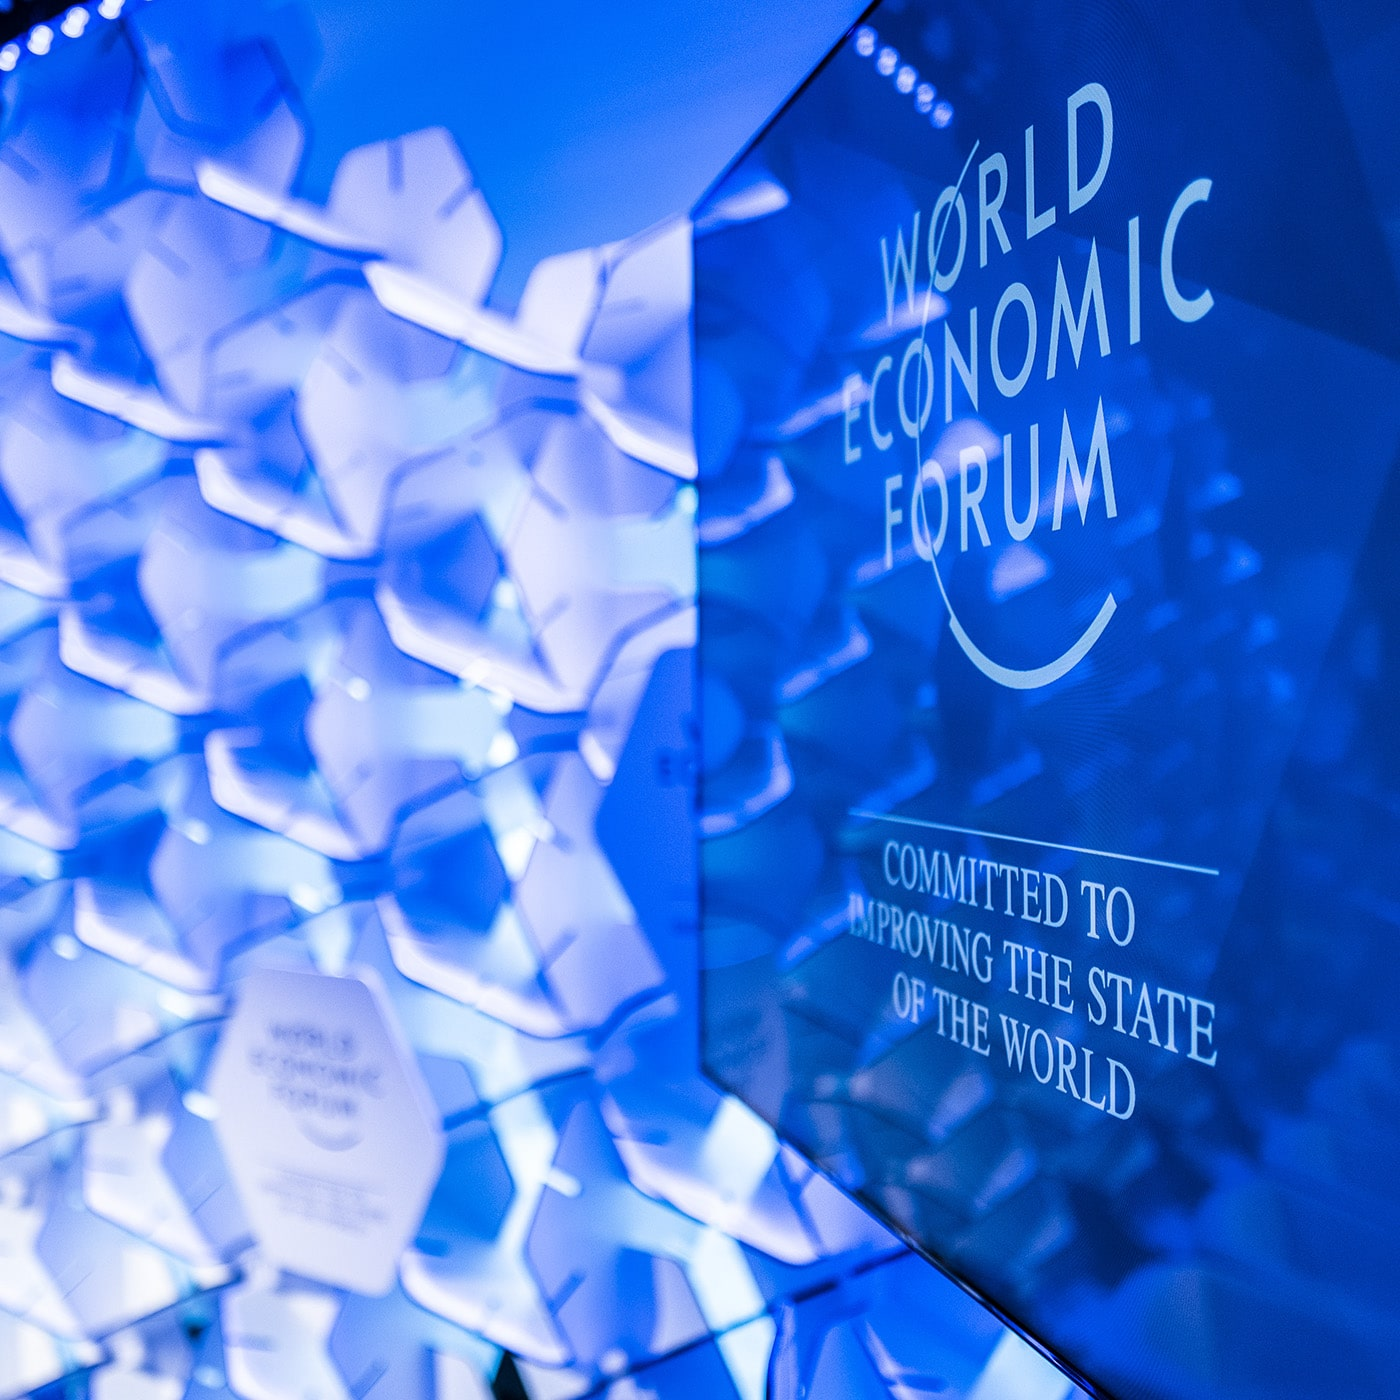 A display at the World Economic Forum